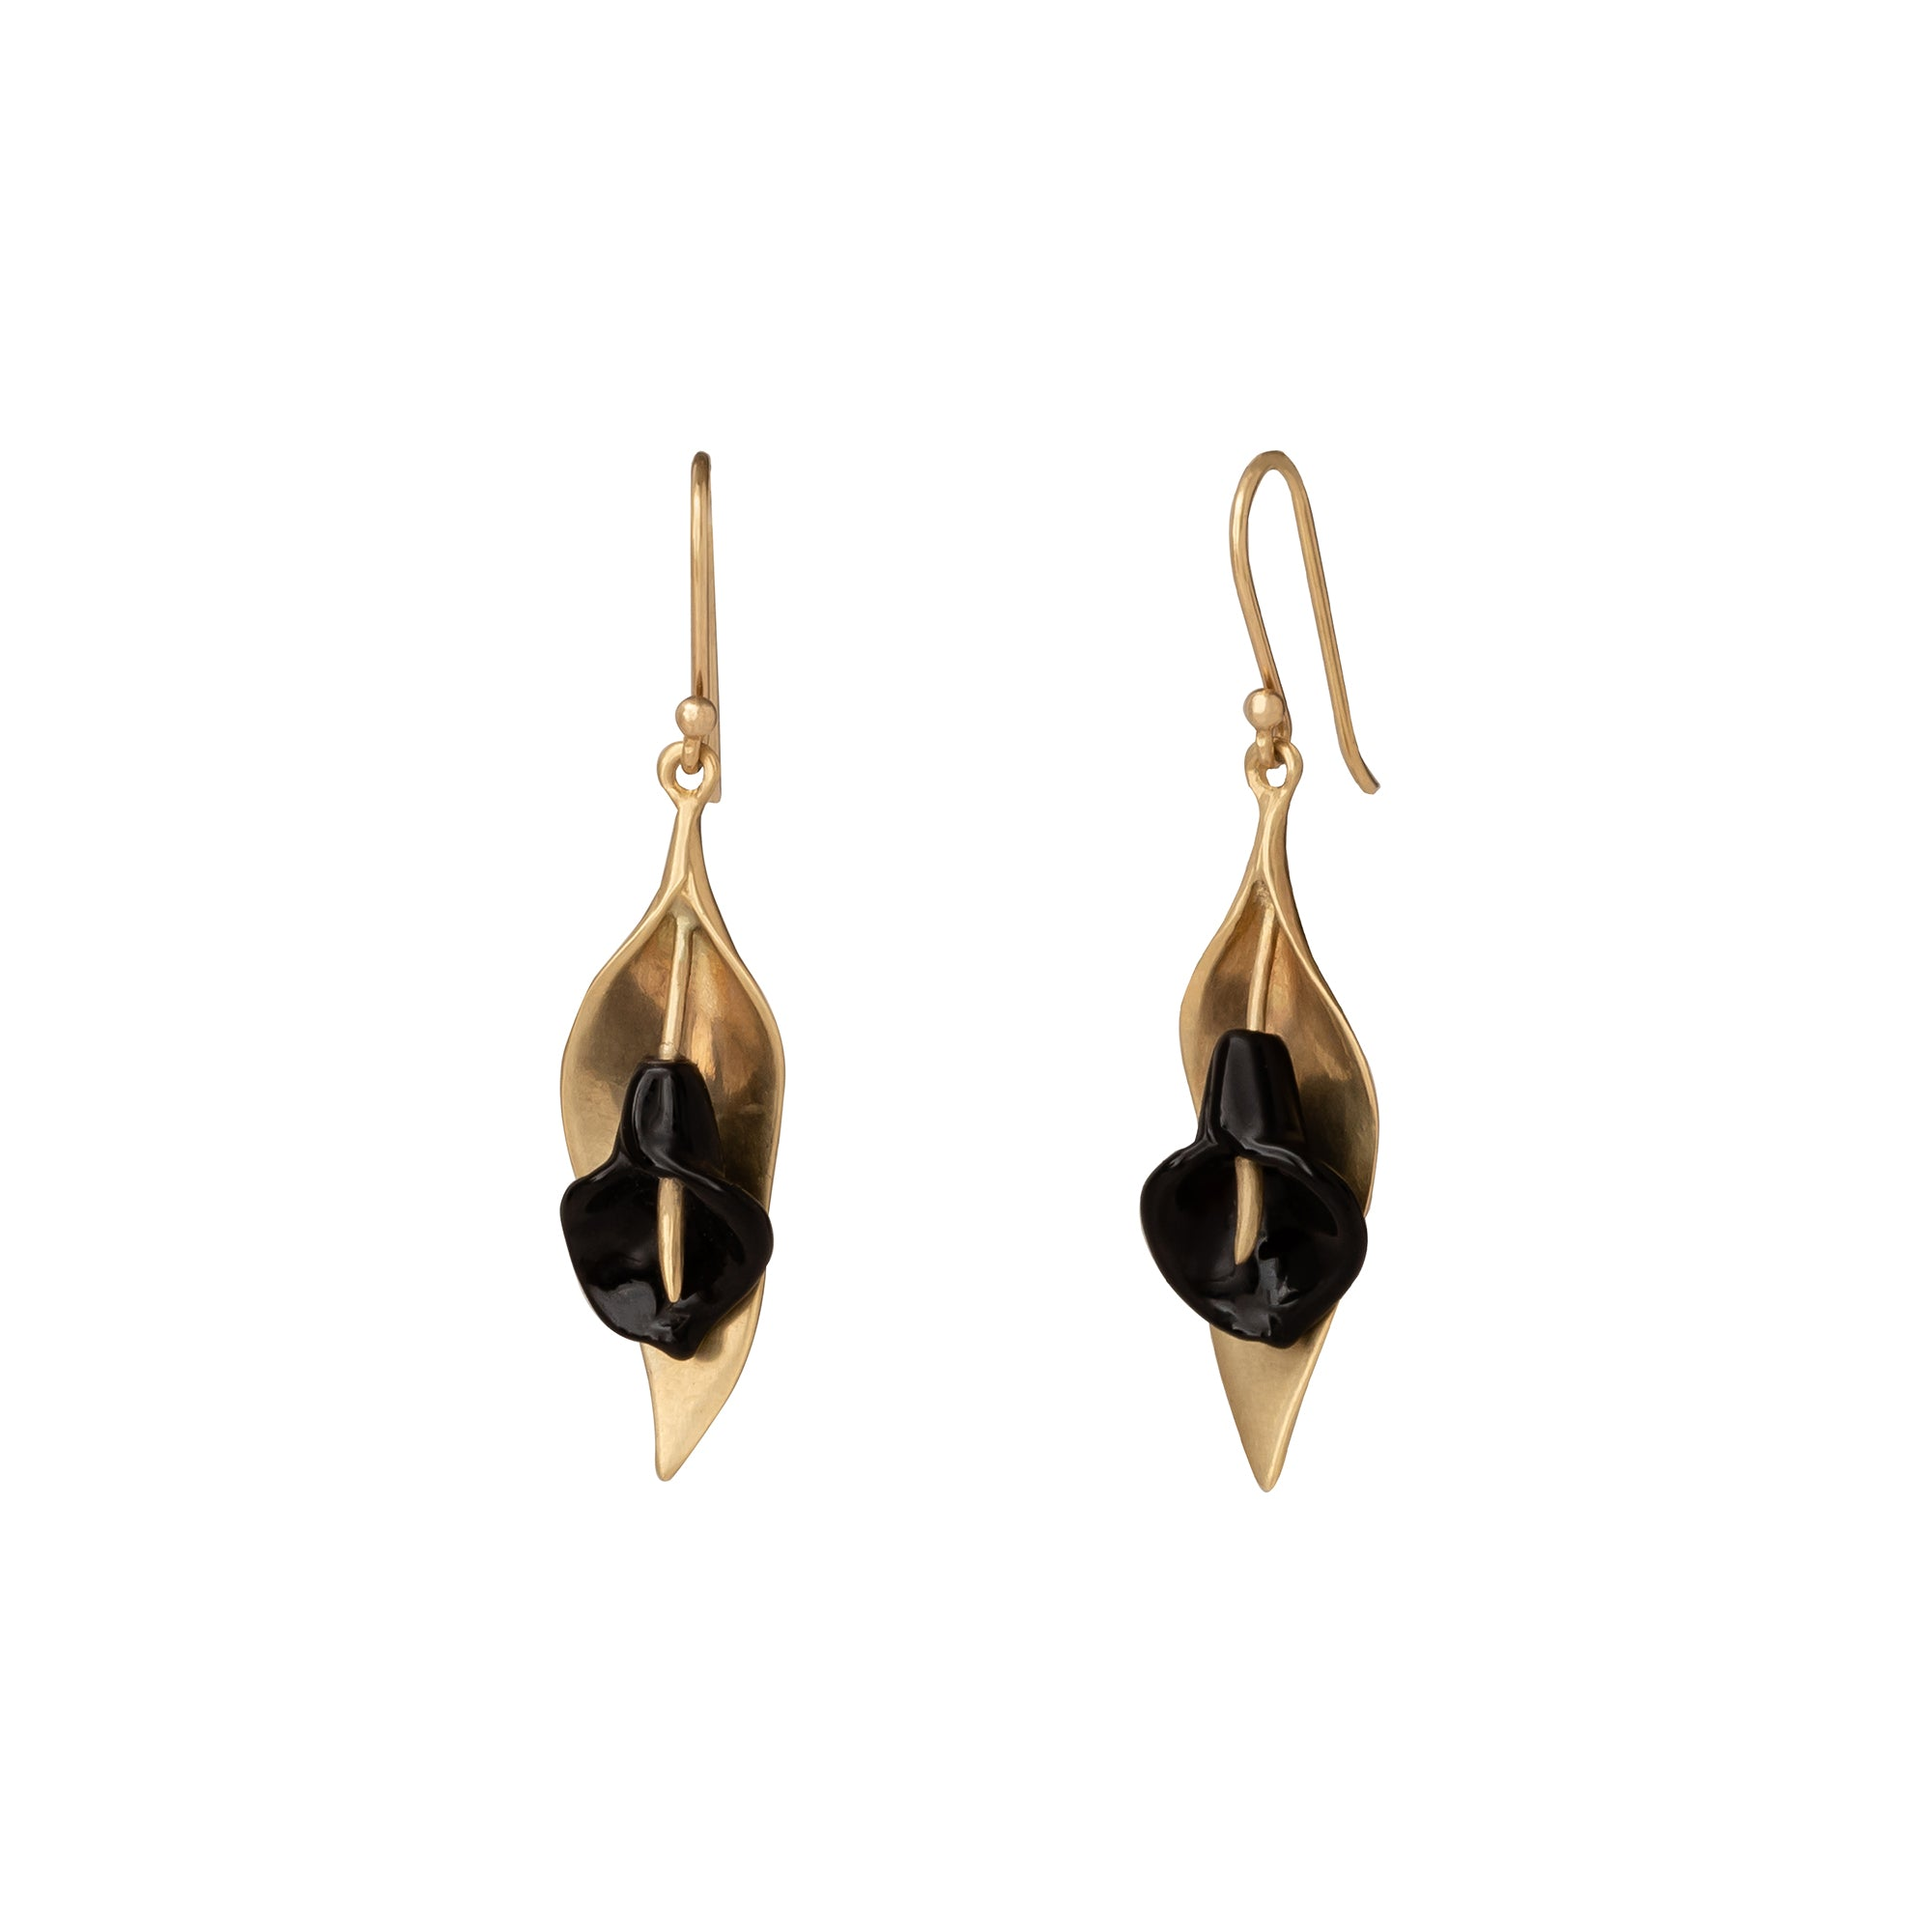 Small Cala Lilly Black Onyx Earrings - Annette Ferdinansen - Earrings | Broken English Jewelry